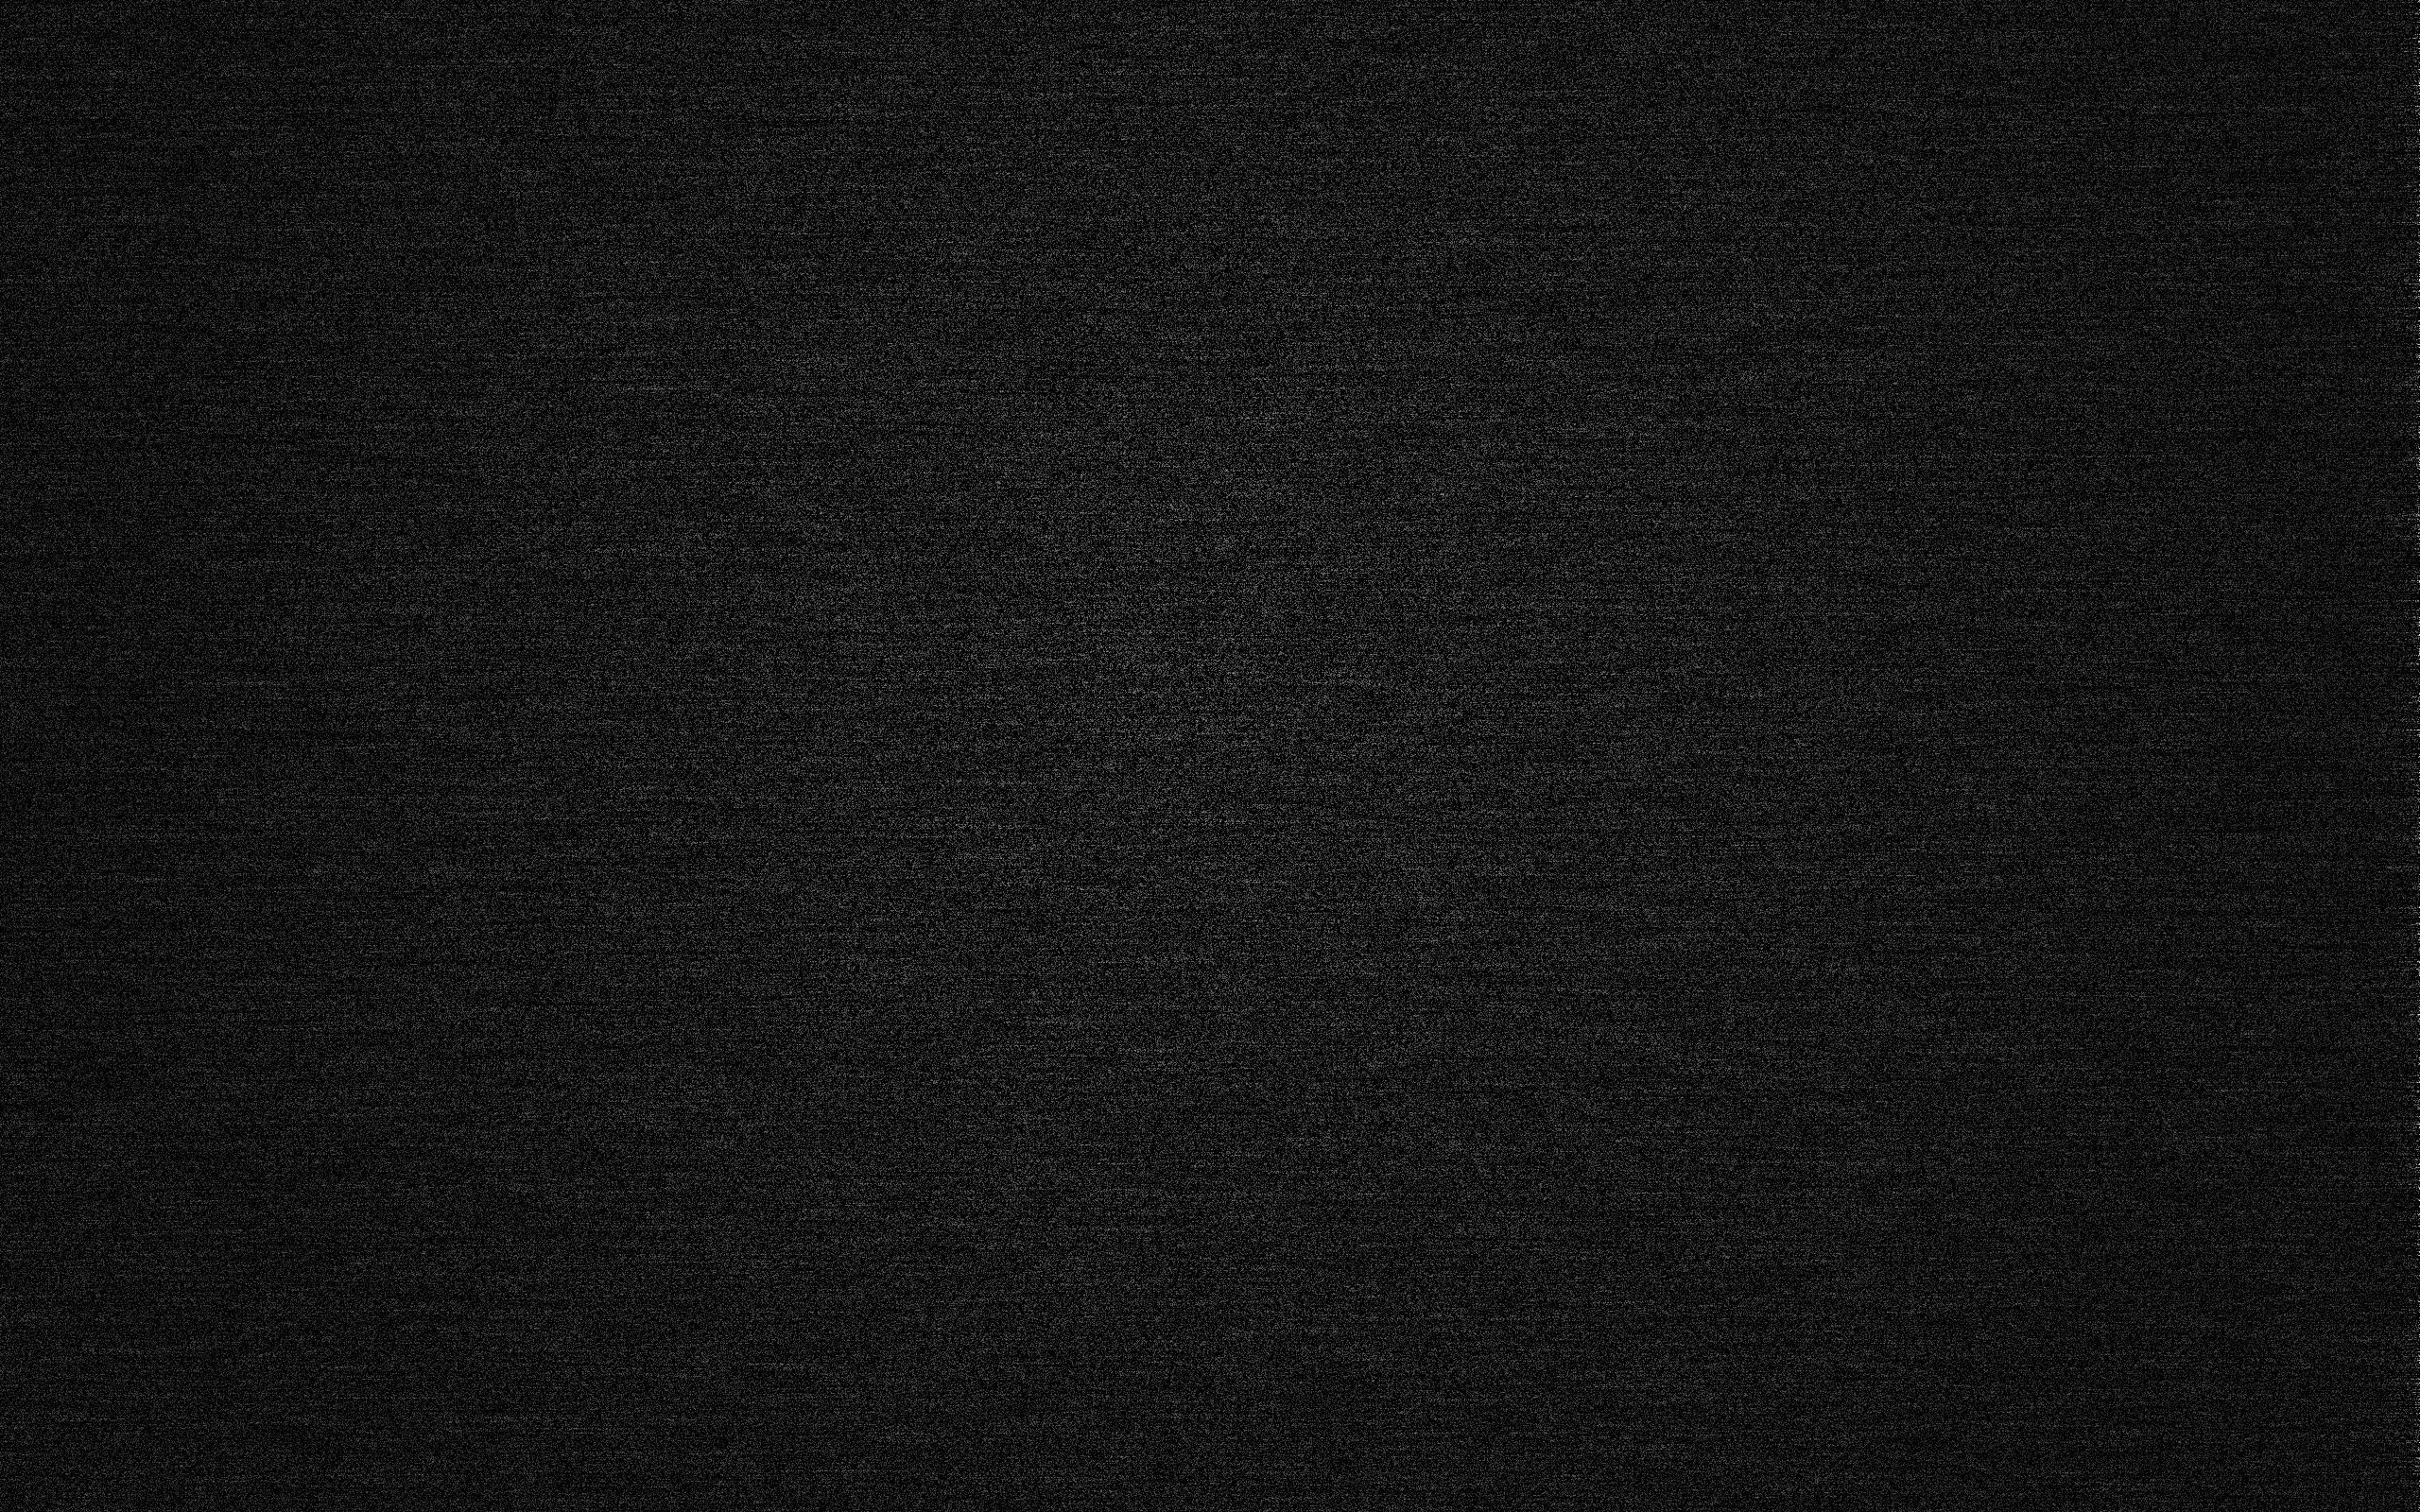 texture black fabric denim textures wallpaper life